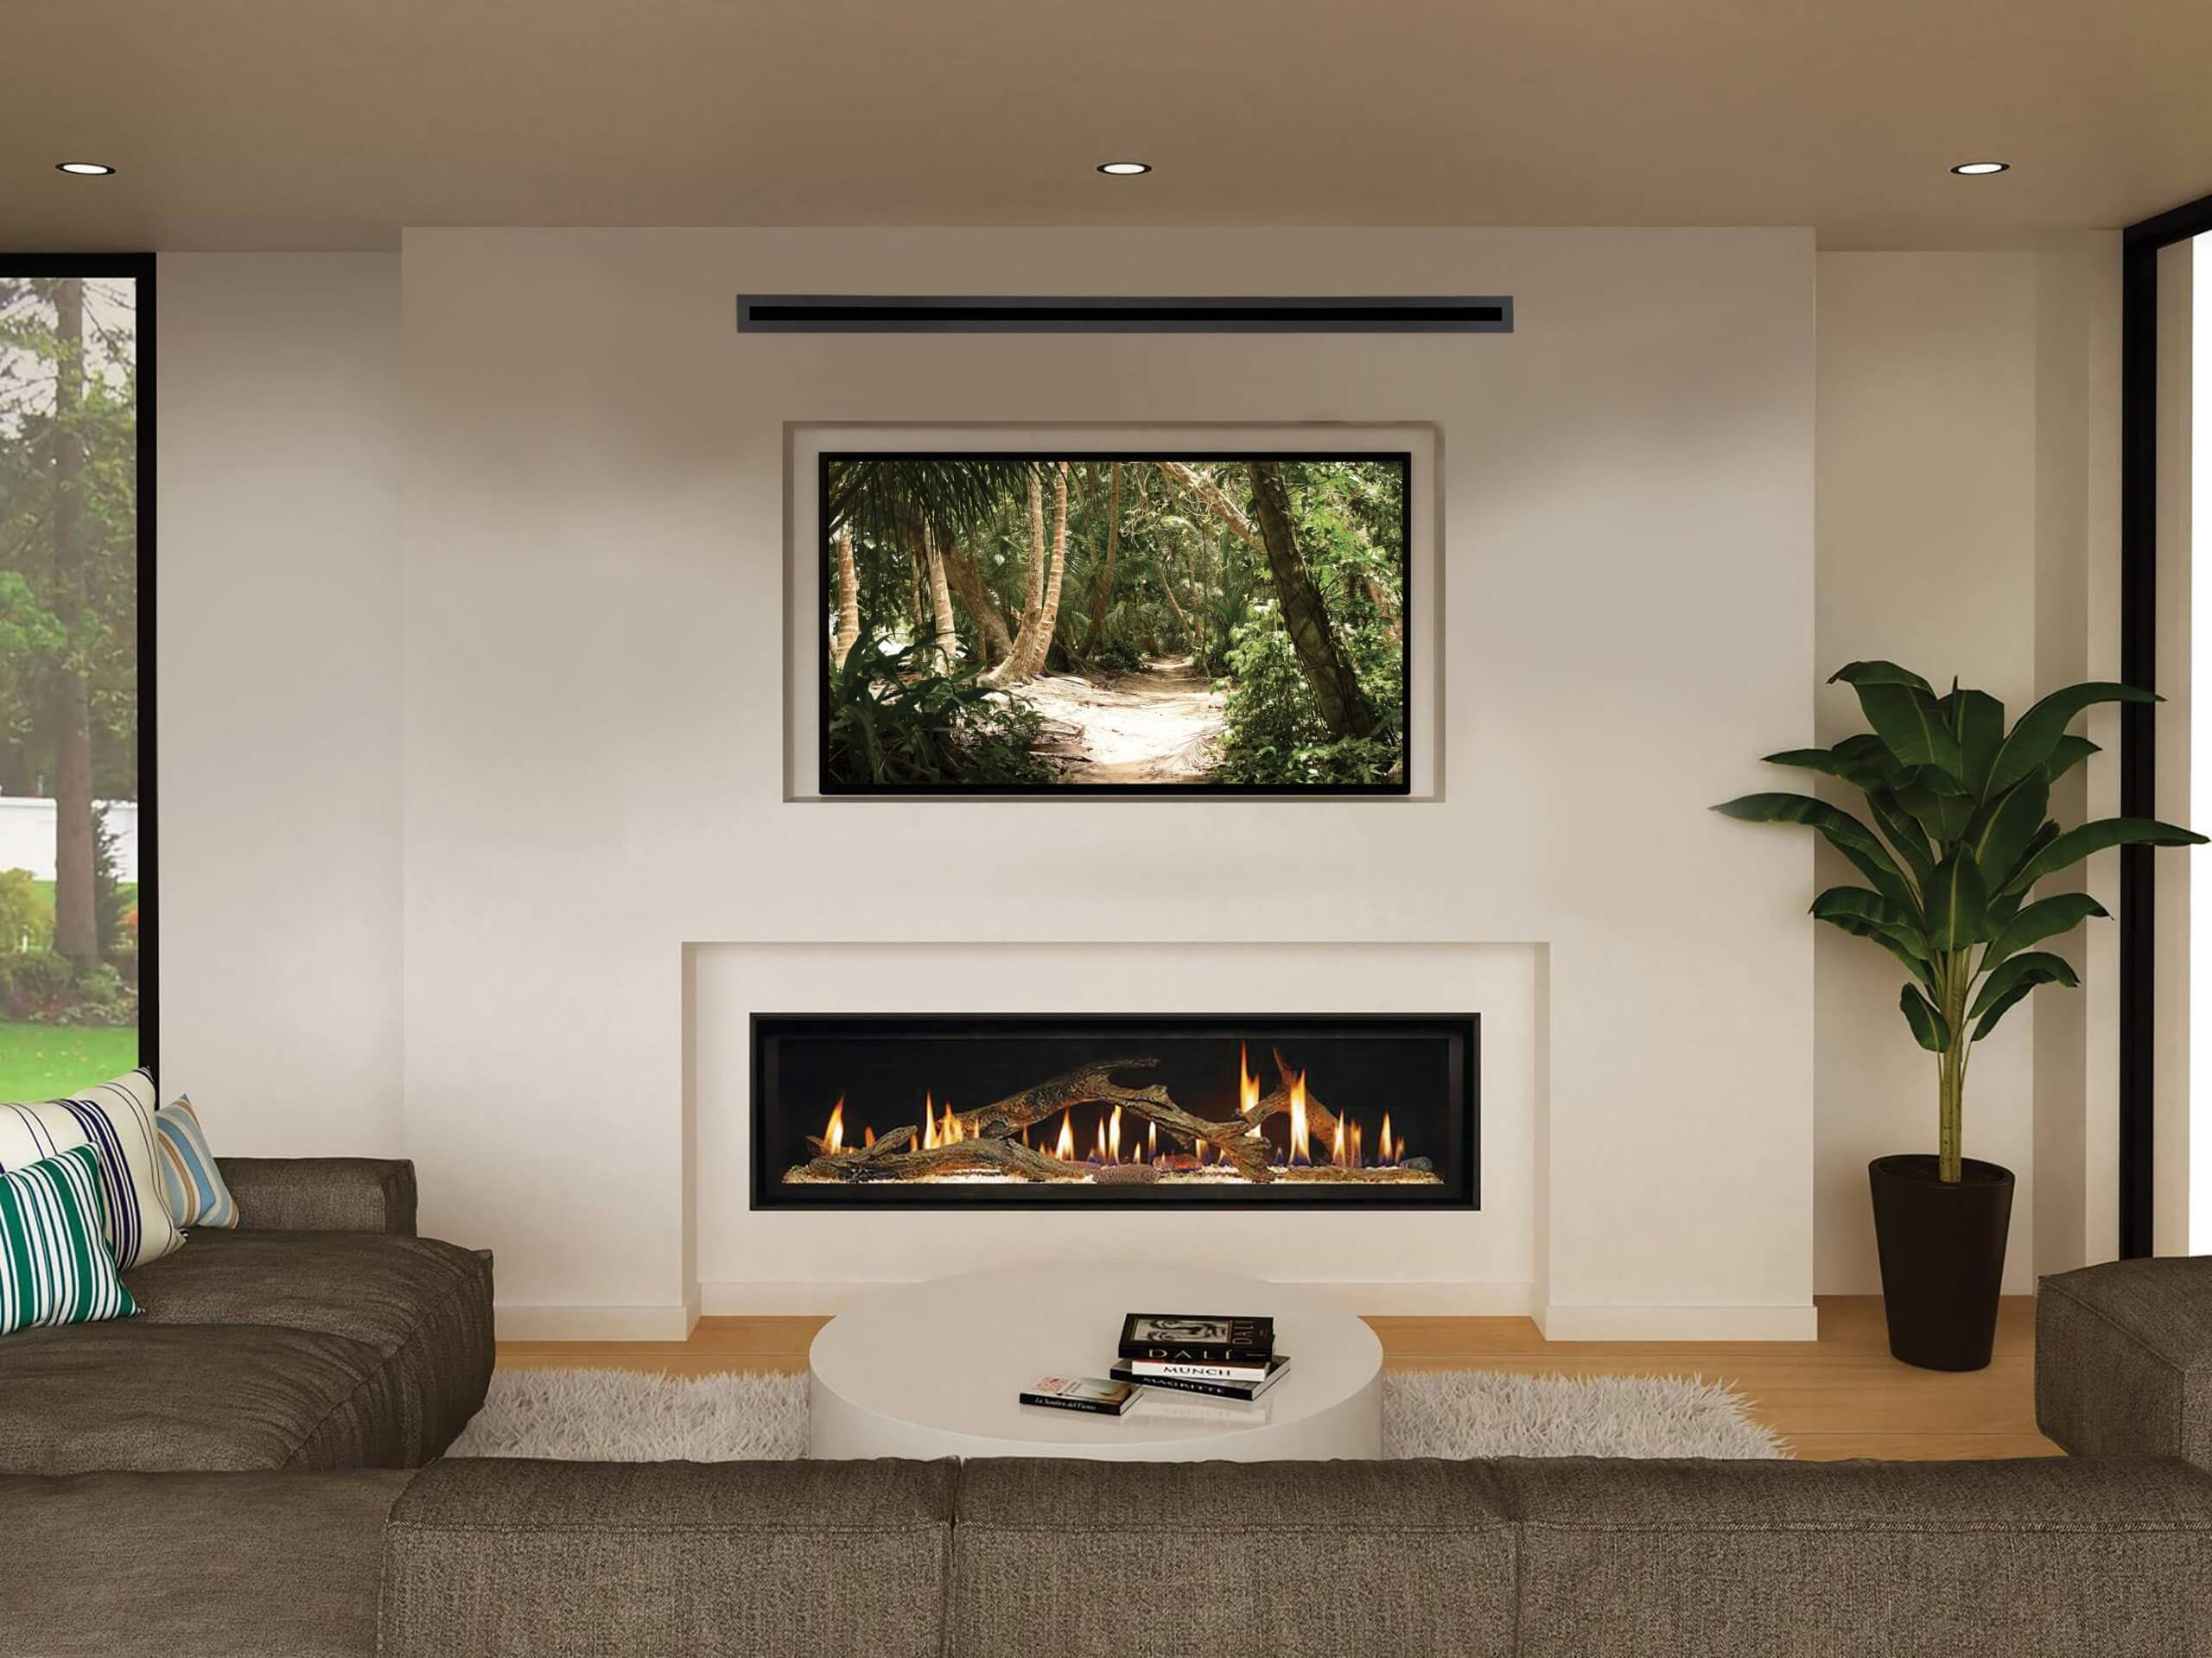 A linear gas fireplace sits beneath a recessed television